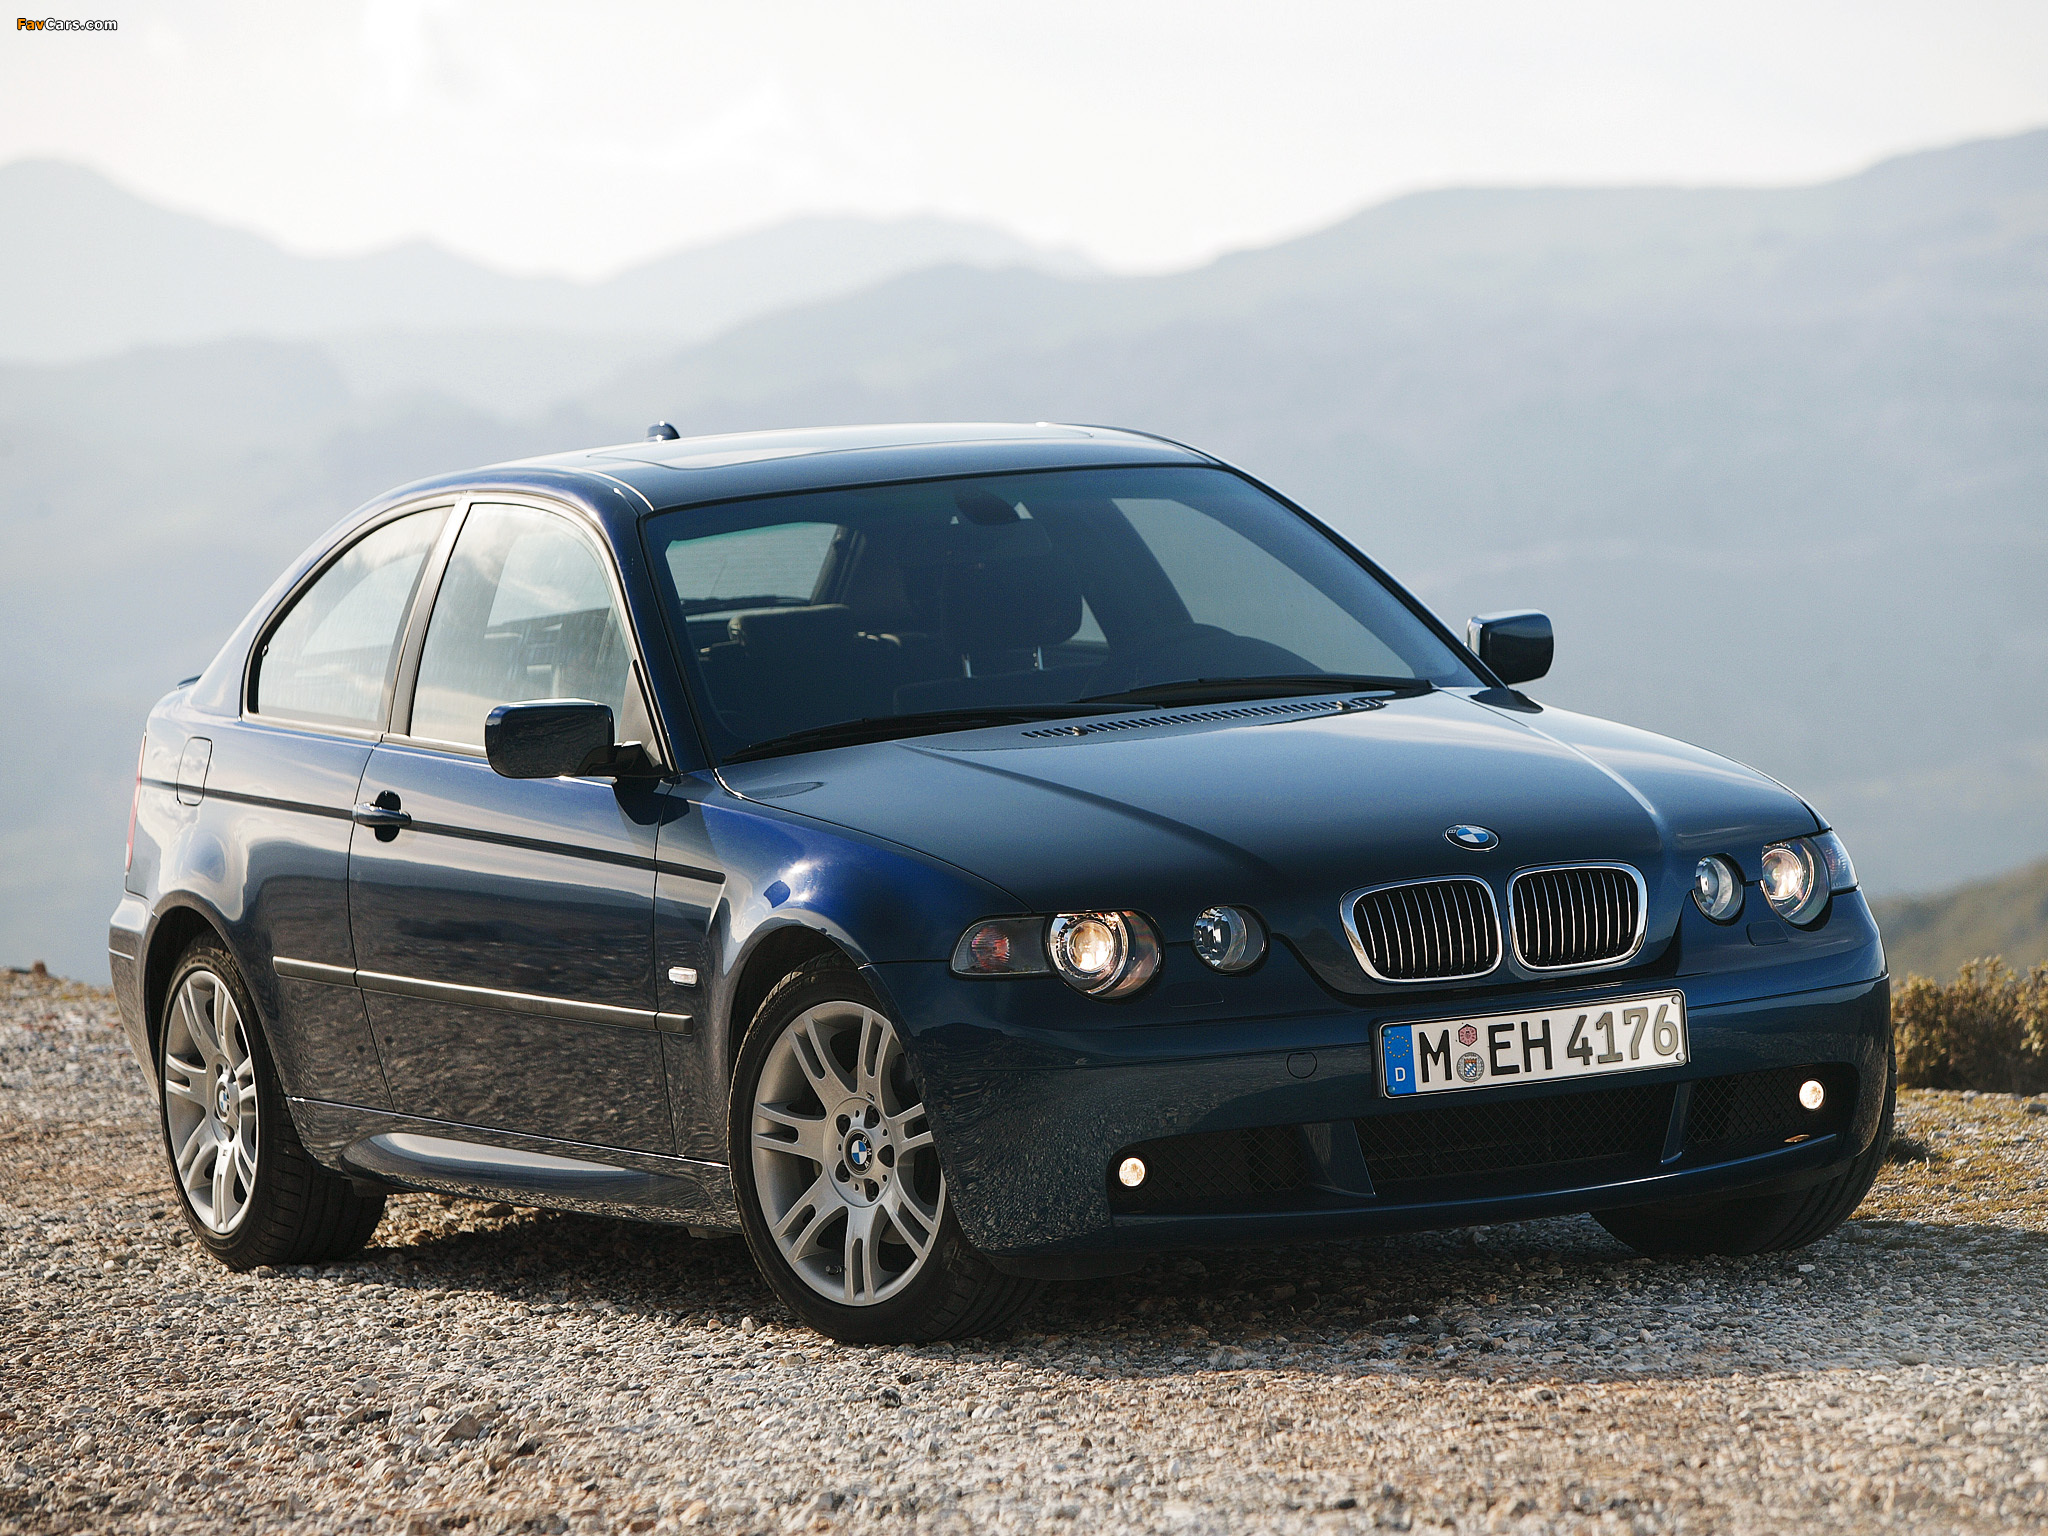 BMW 3 series 325ti 2001 photo - 11